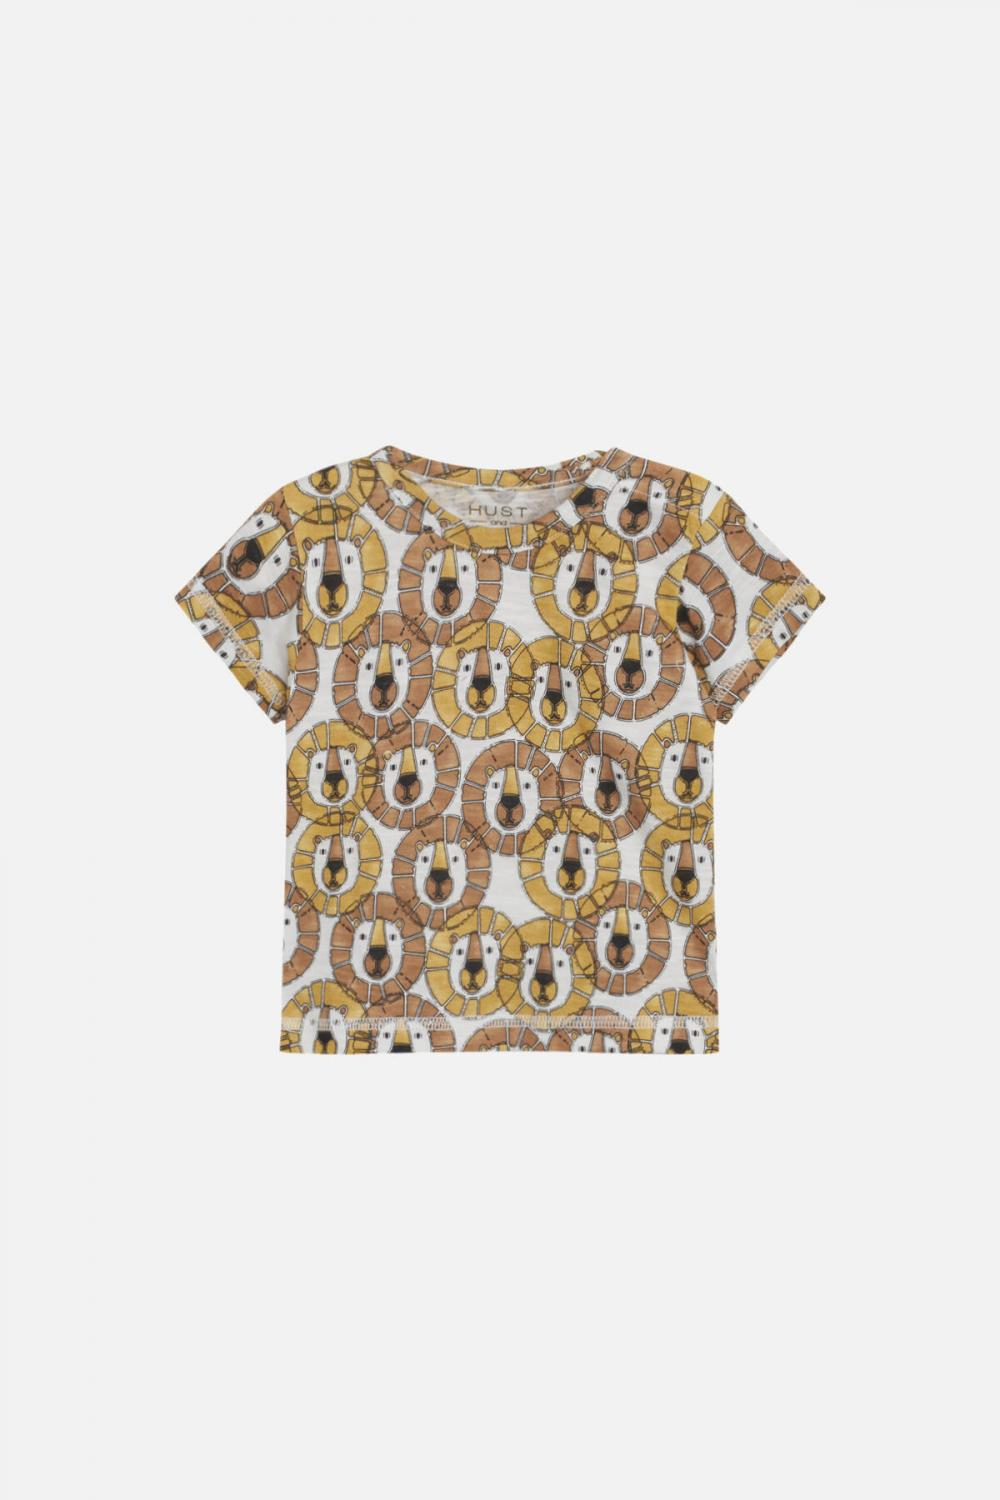 HUST&CLAIRE T-SHIRT 49544049 TIGER